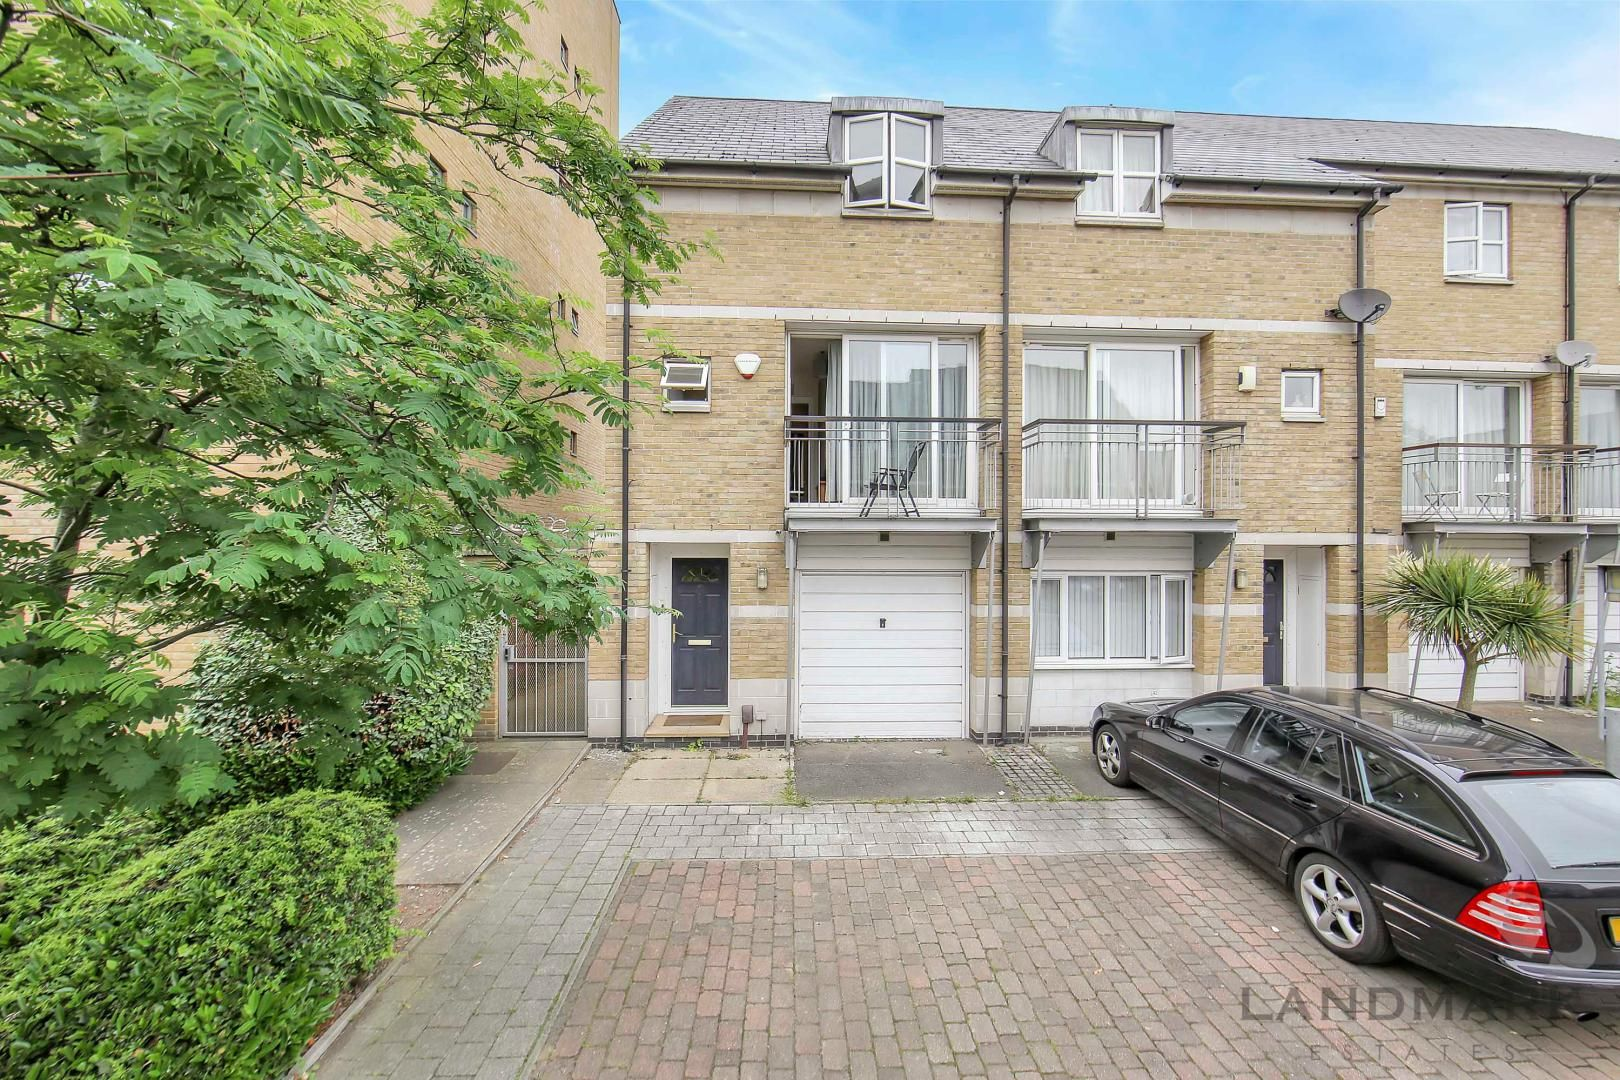 3 bed house to rent in Bering Square - Property Image 1